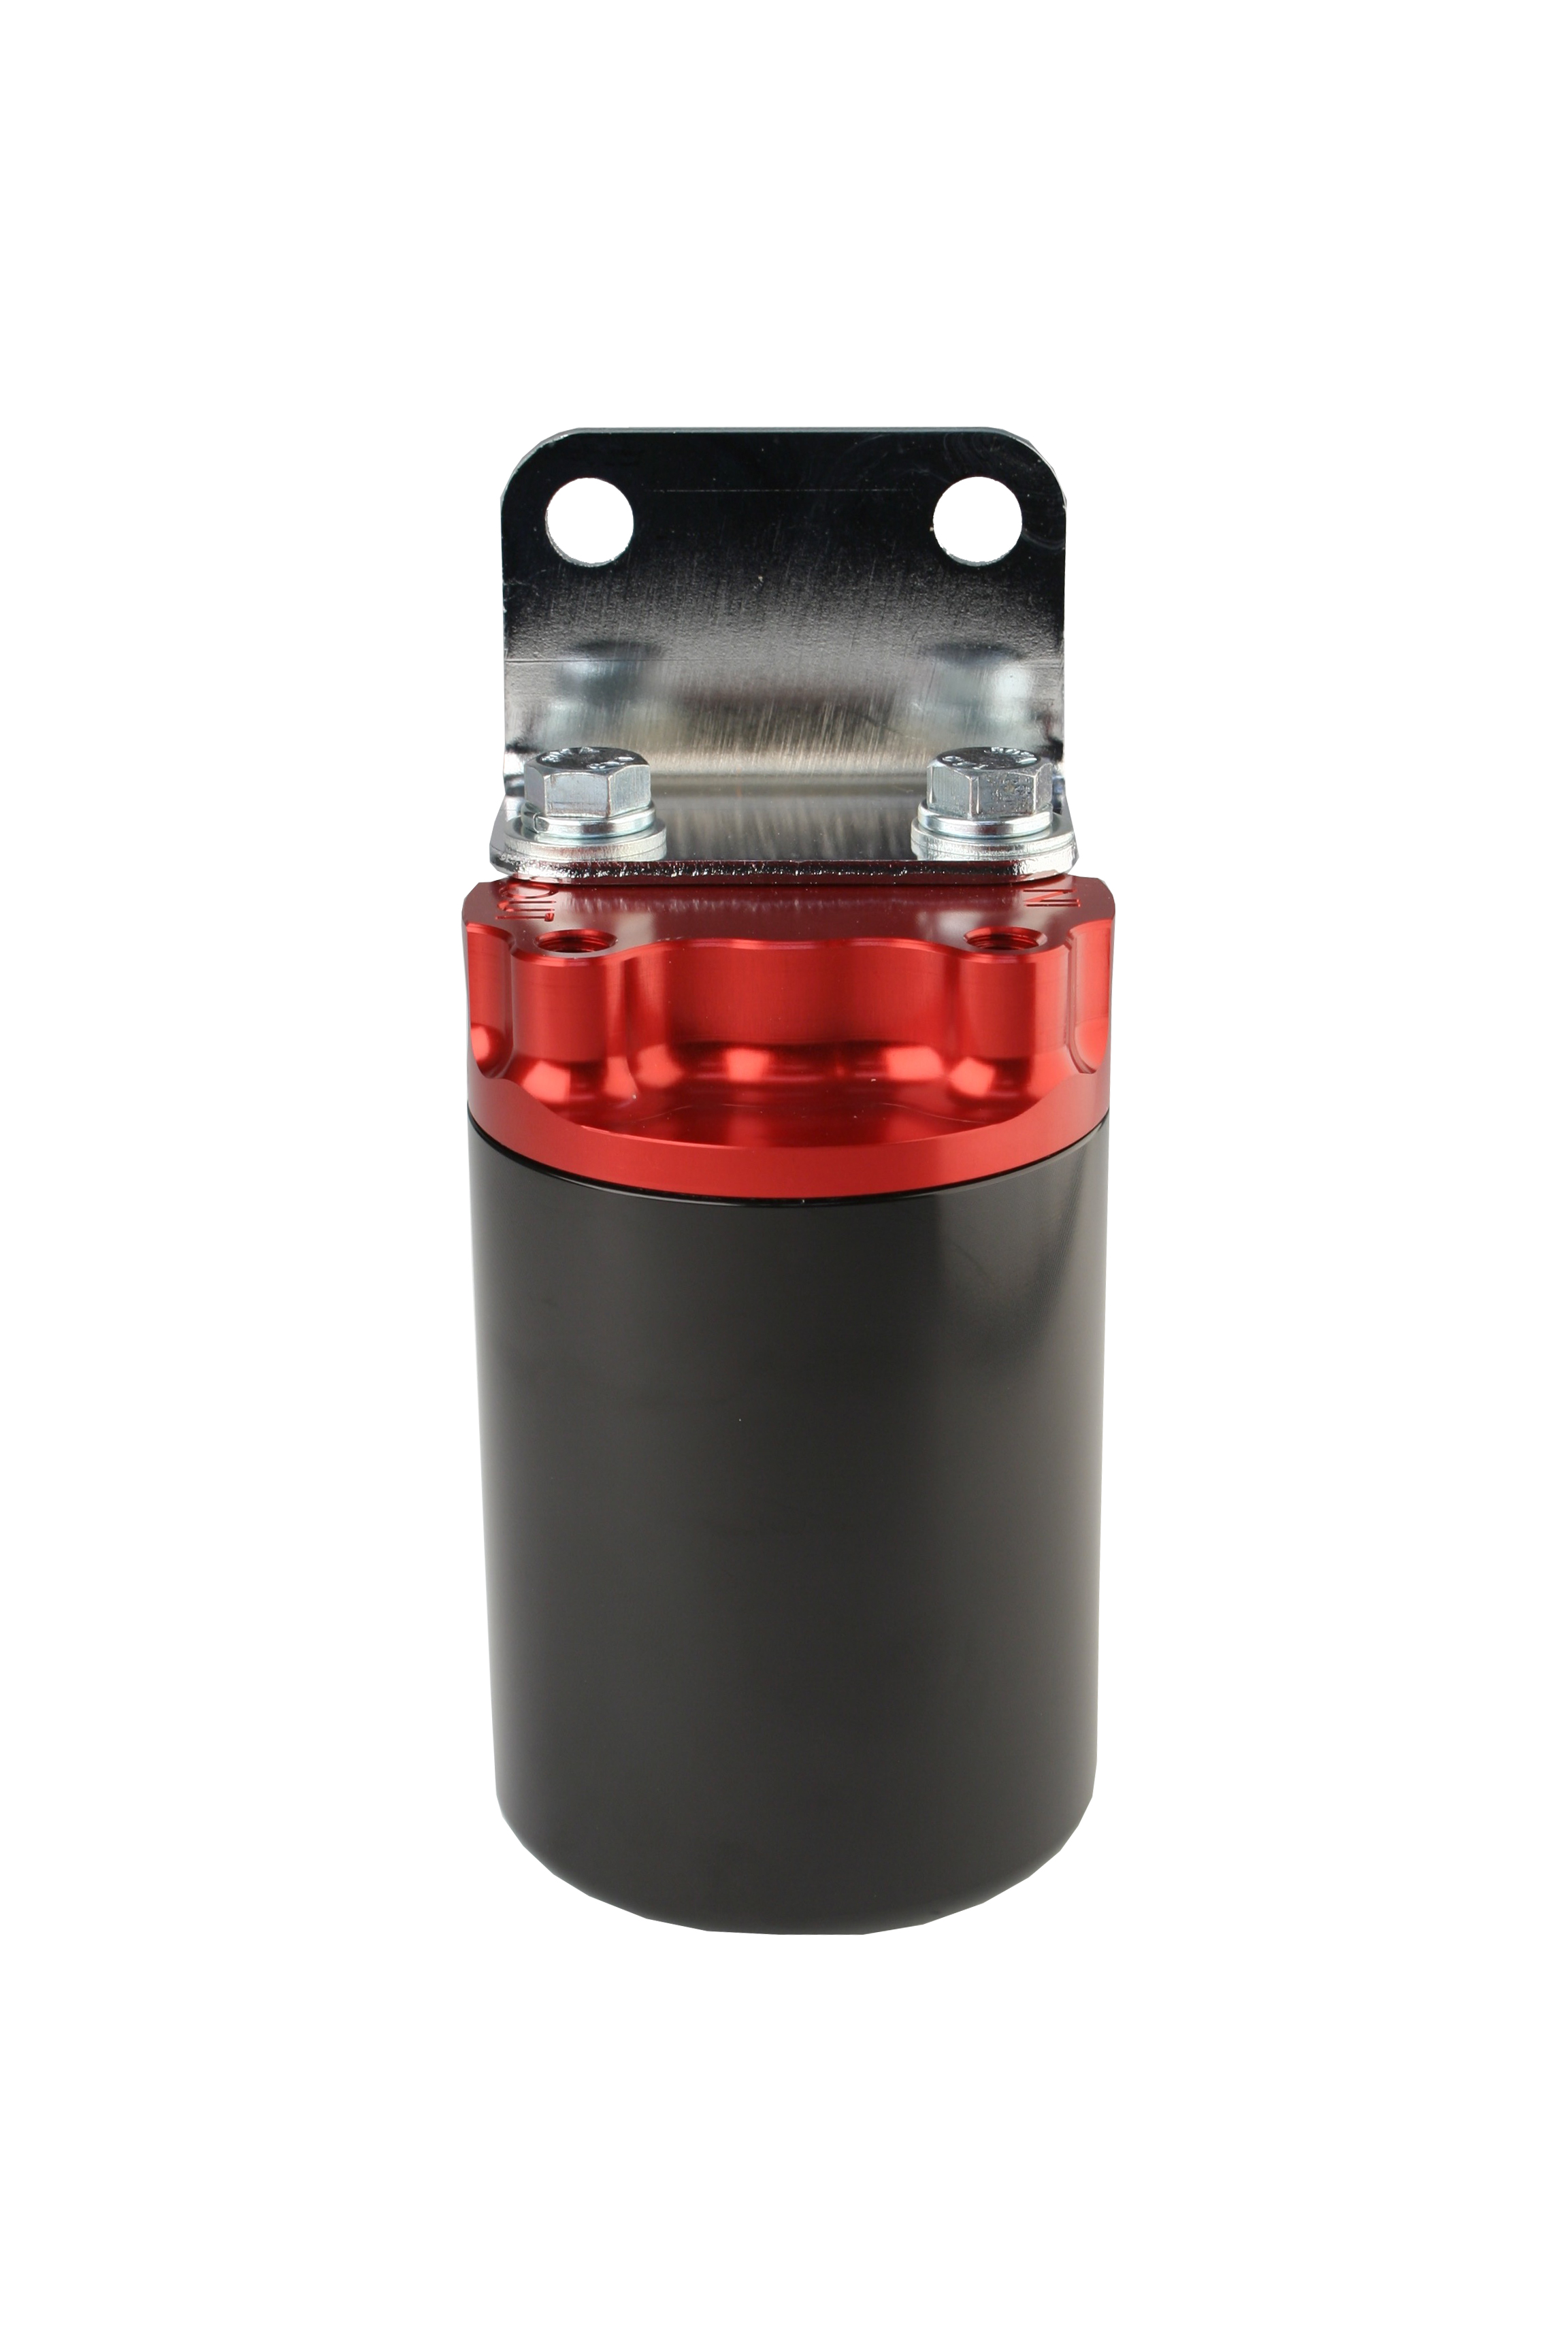 10 Micron Red Black Canister Fuel Filter Aeromotive Inc Gtr